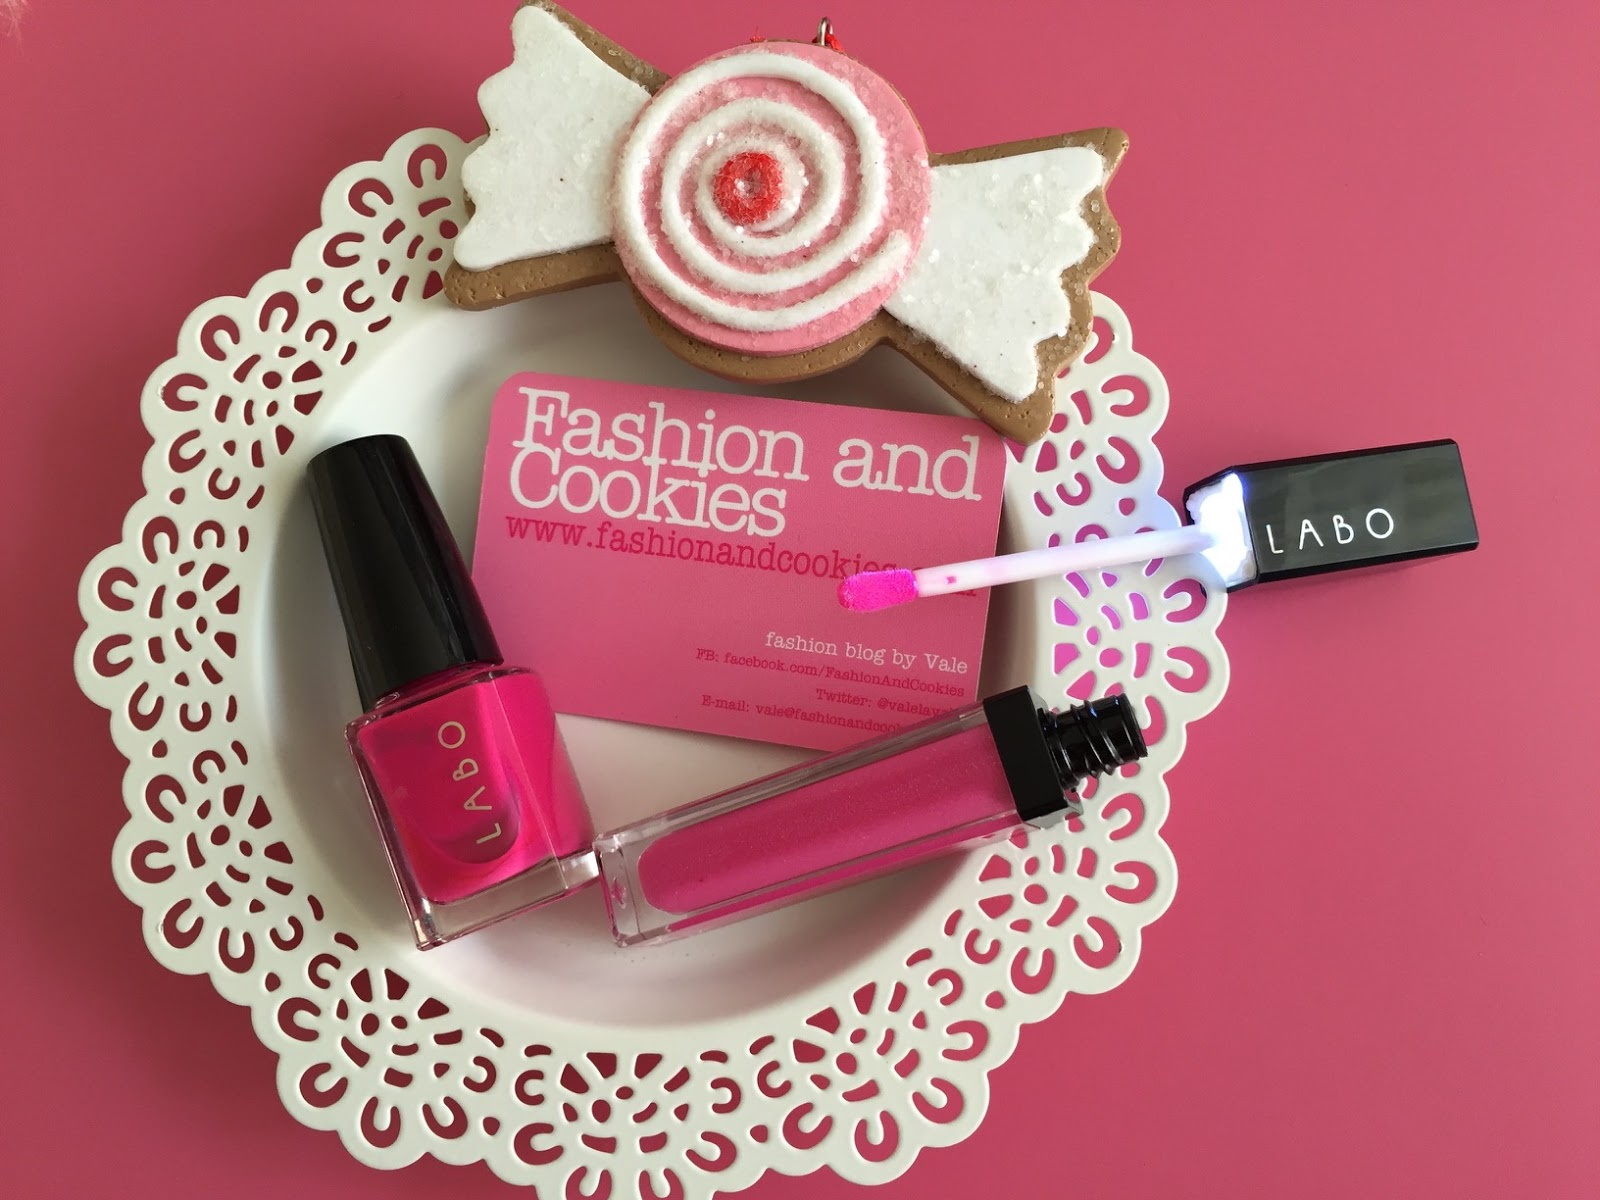 Labo Suisse Make-Up Led pink gloss and nail polish, led light makeup on Fashion and Cookies fashion and beauty blog, fashion and beauty blogger